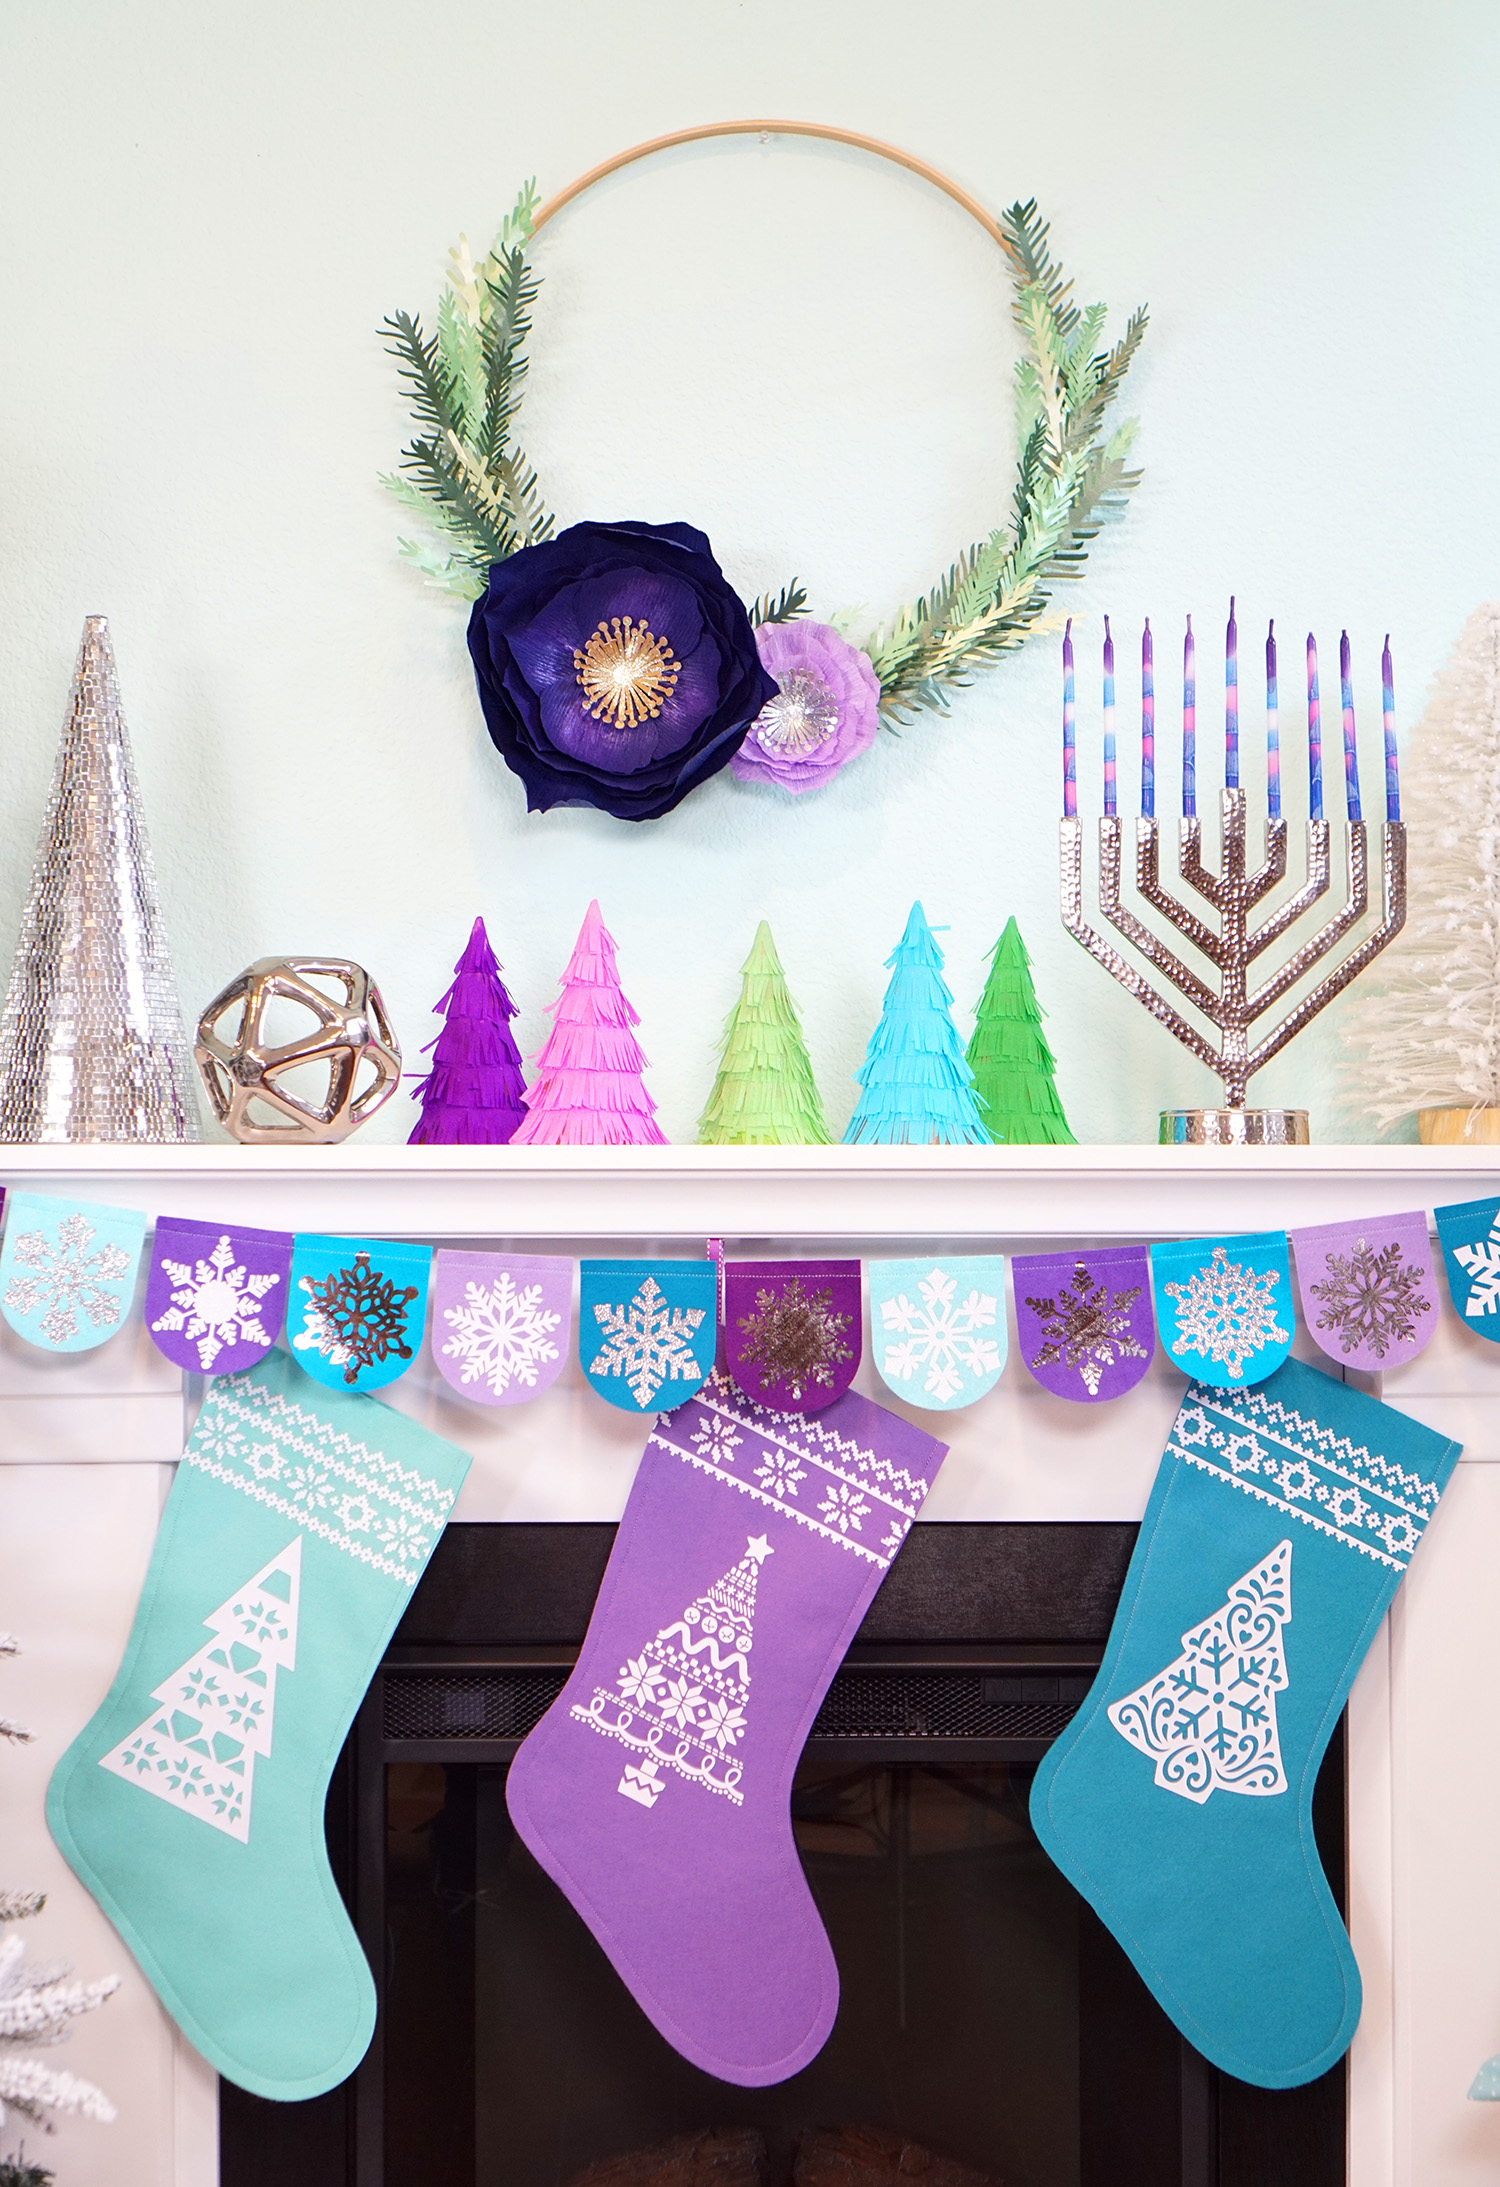 Hanukkah Christmas Stocking.Chrismukkah Holiday Crafts With Cricut Maker Happiness Is